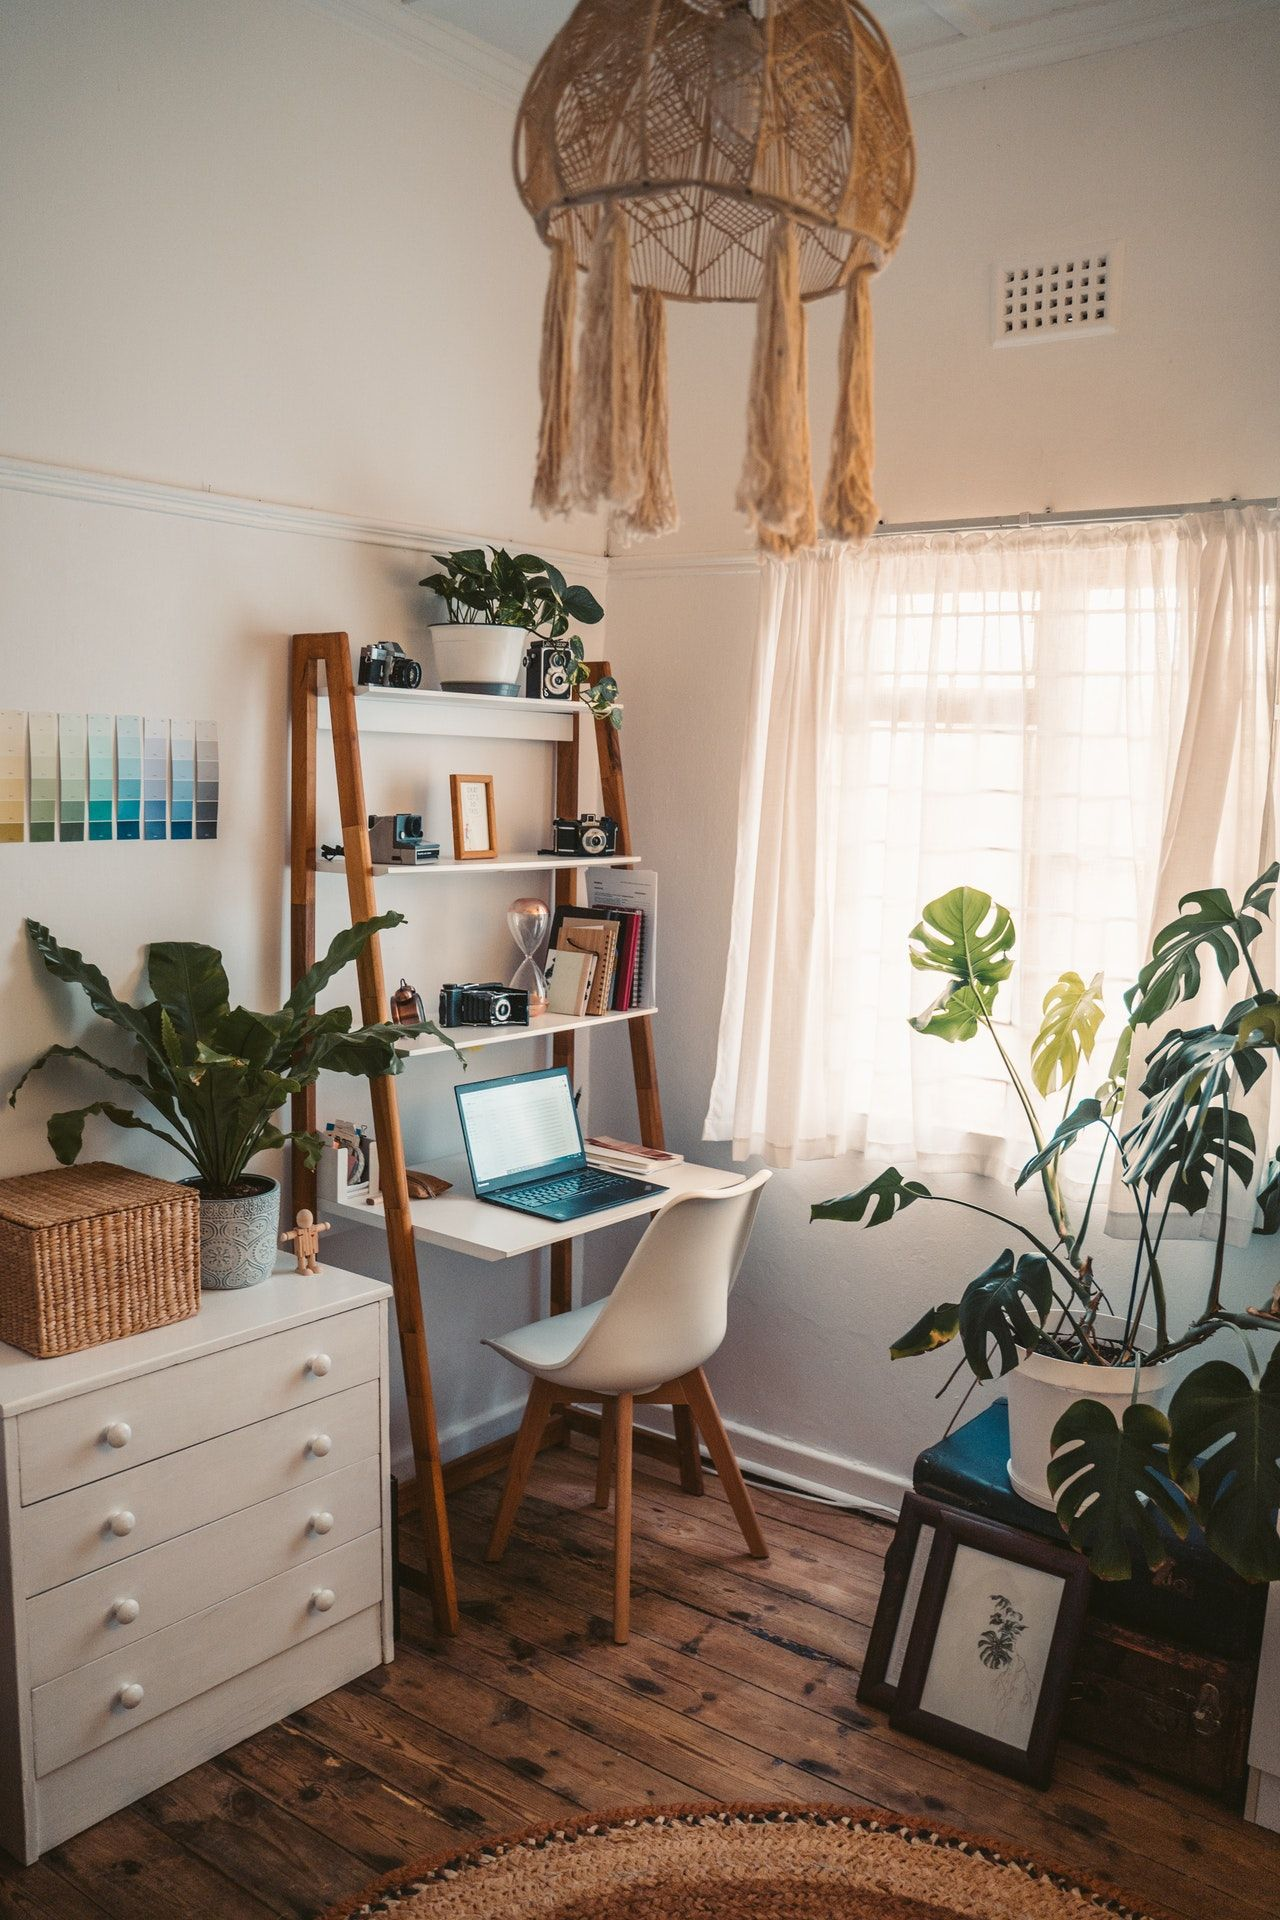 5 Ways to Make the Most of a Small Apartment